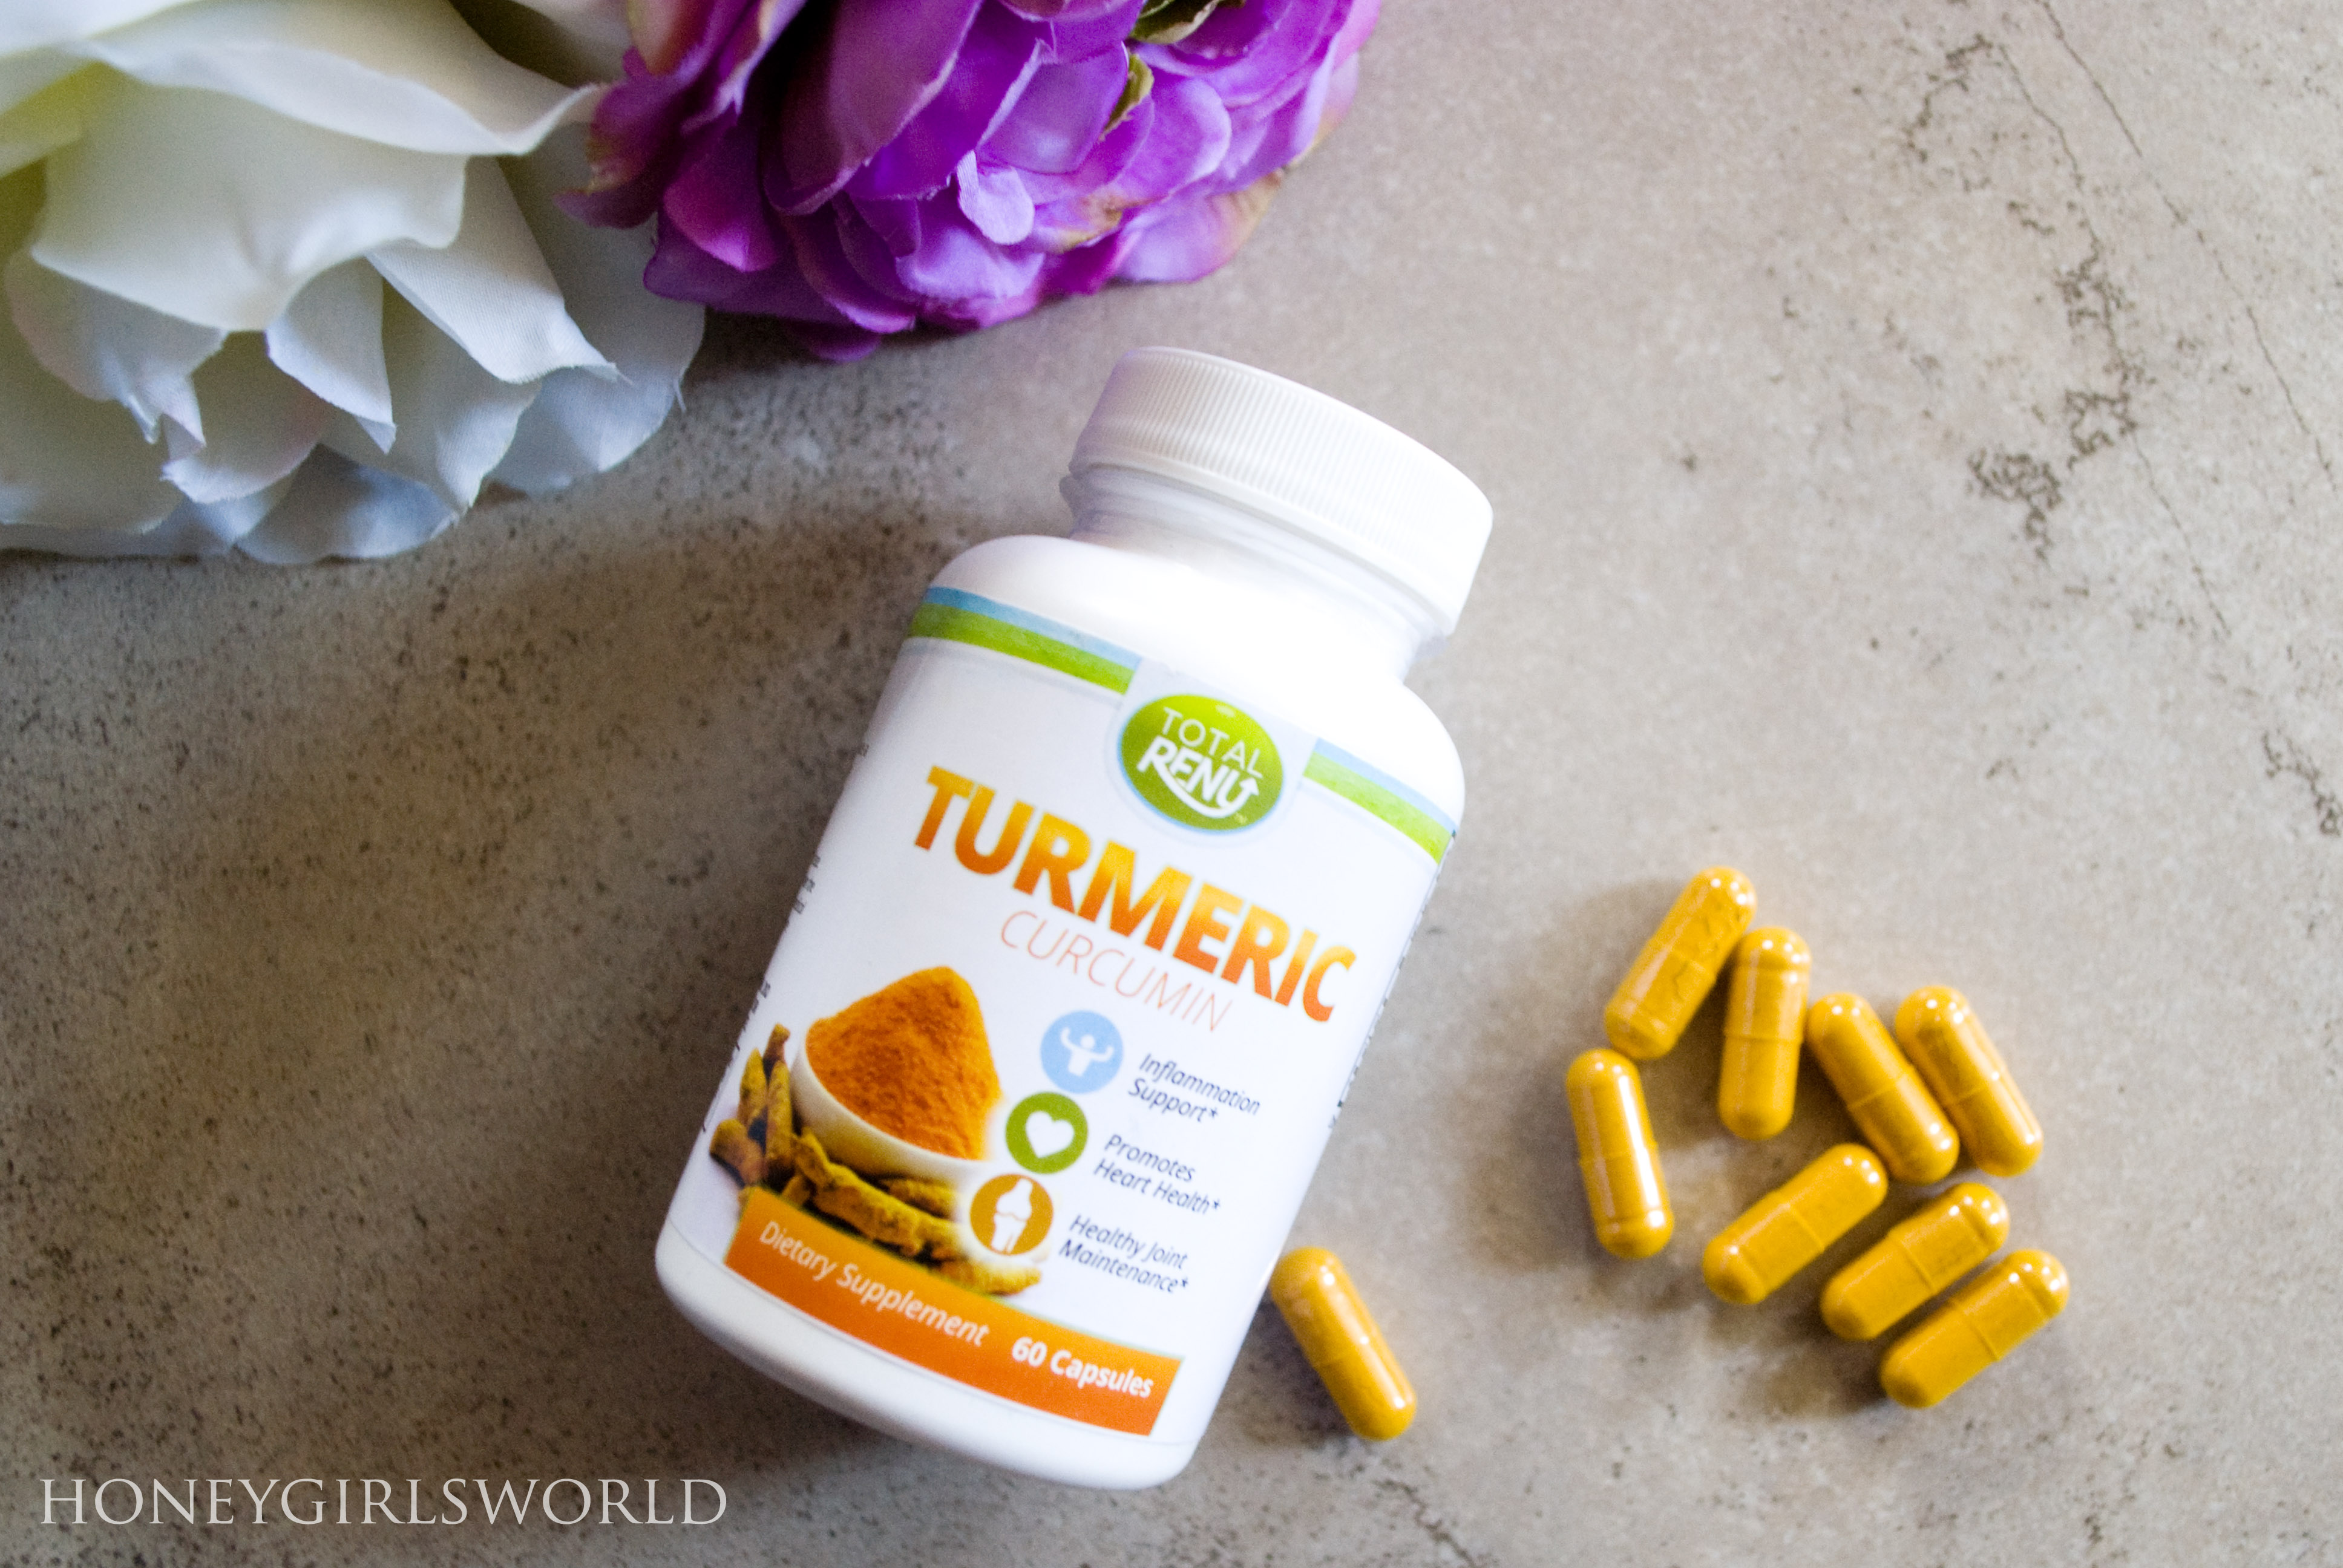 Review - Total Renu Turmeric Curcumin Dietary Supplement